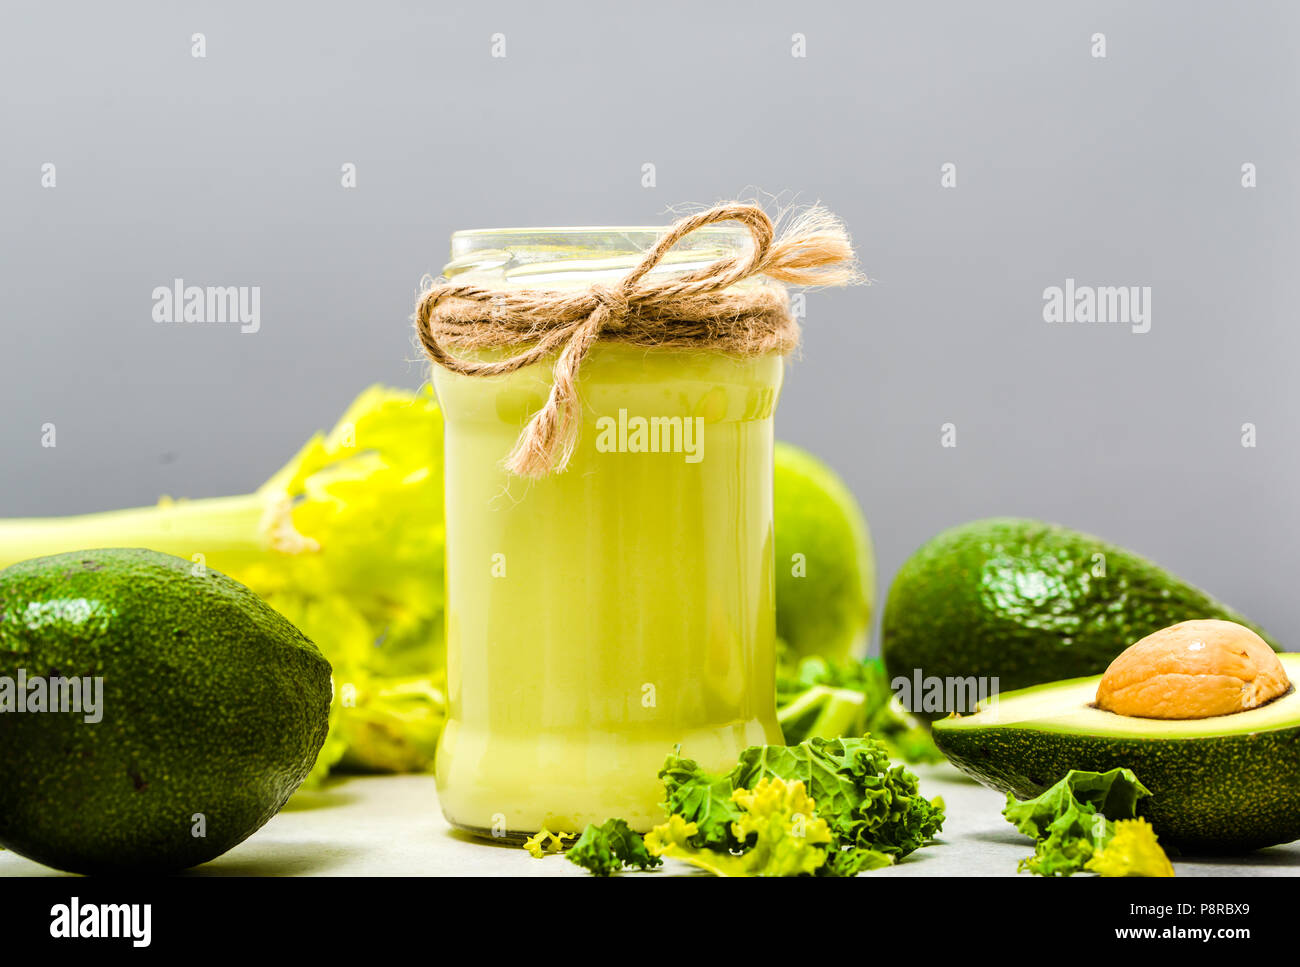 Vegetable Drink With Green Vegetables Jar Of Smoothie With Avocado